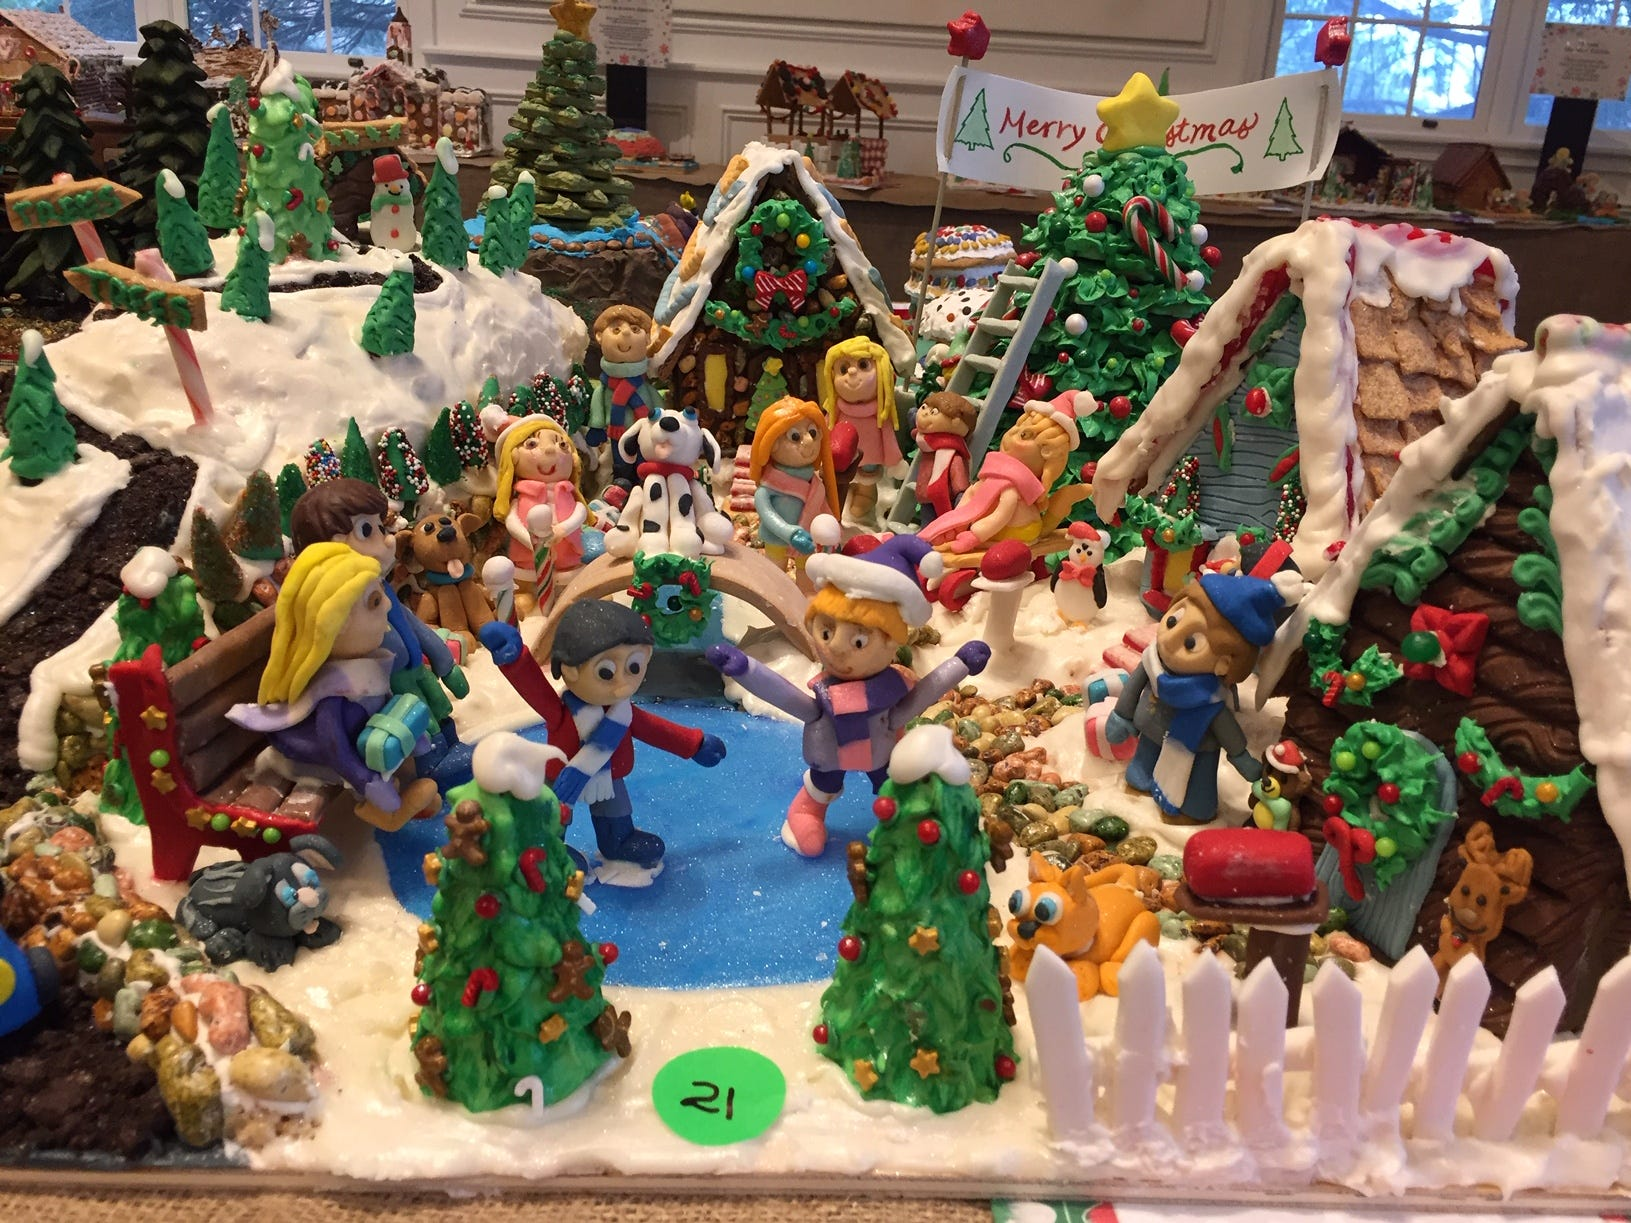 """Skating into Christmas"" by Carrie and Jane of Boonton Township, at the 2018 Gingerbread Wonderland at the Frelinghuysen Arboretum. Adult category."